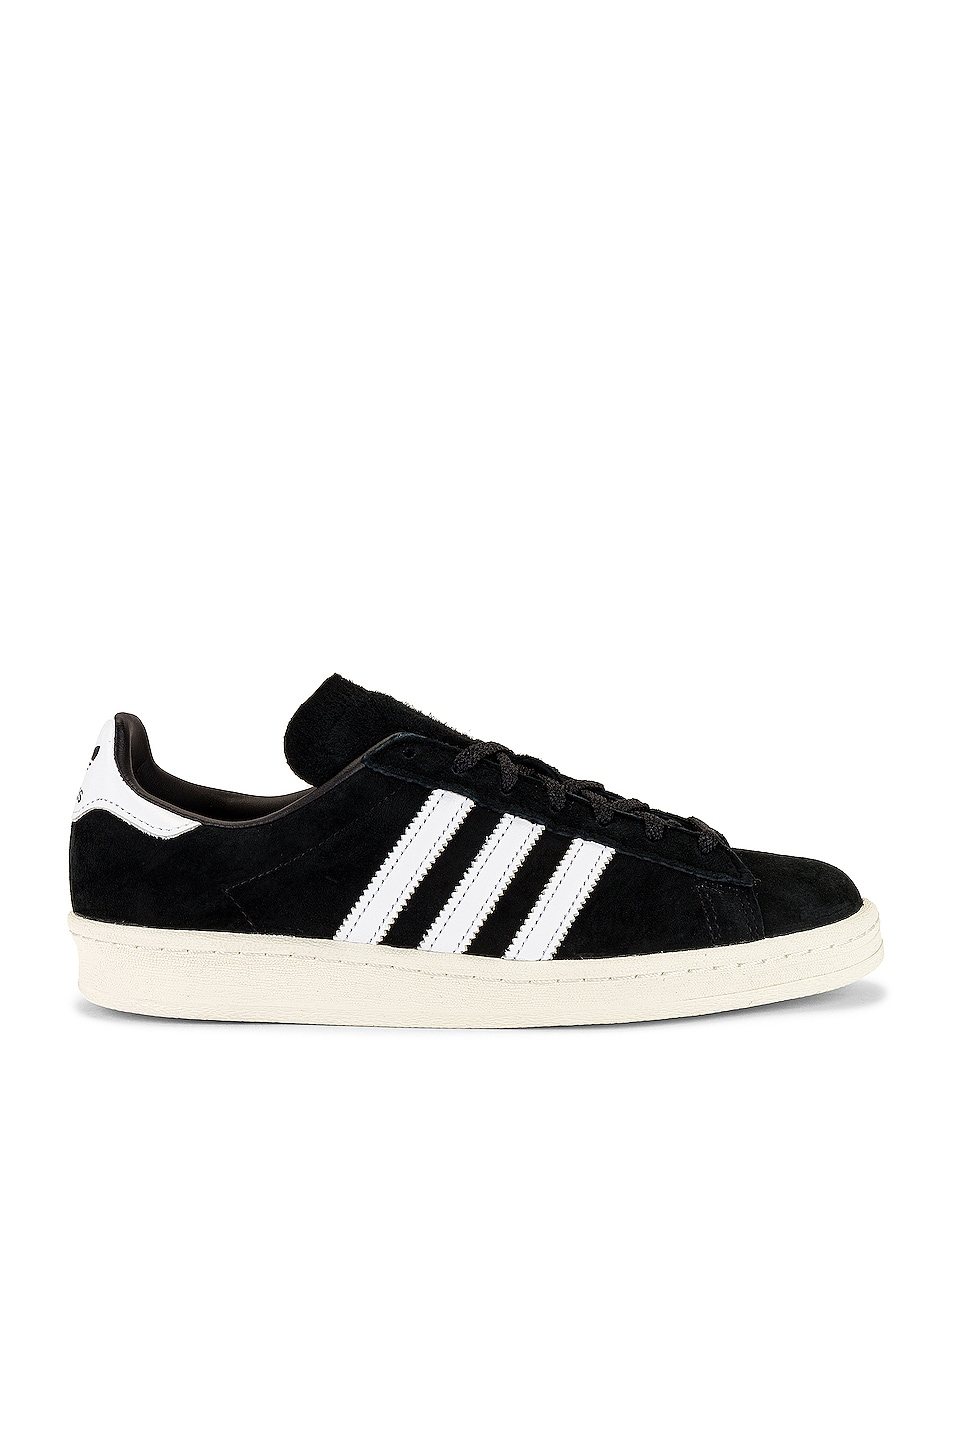 Image 1 of adidas Originals Campus 80s in Black